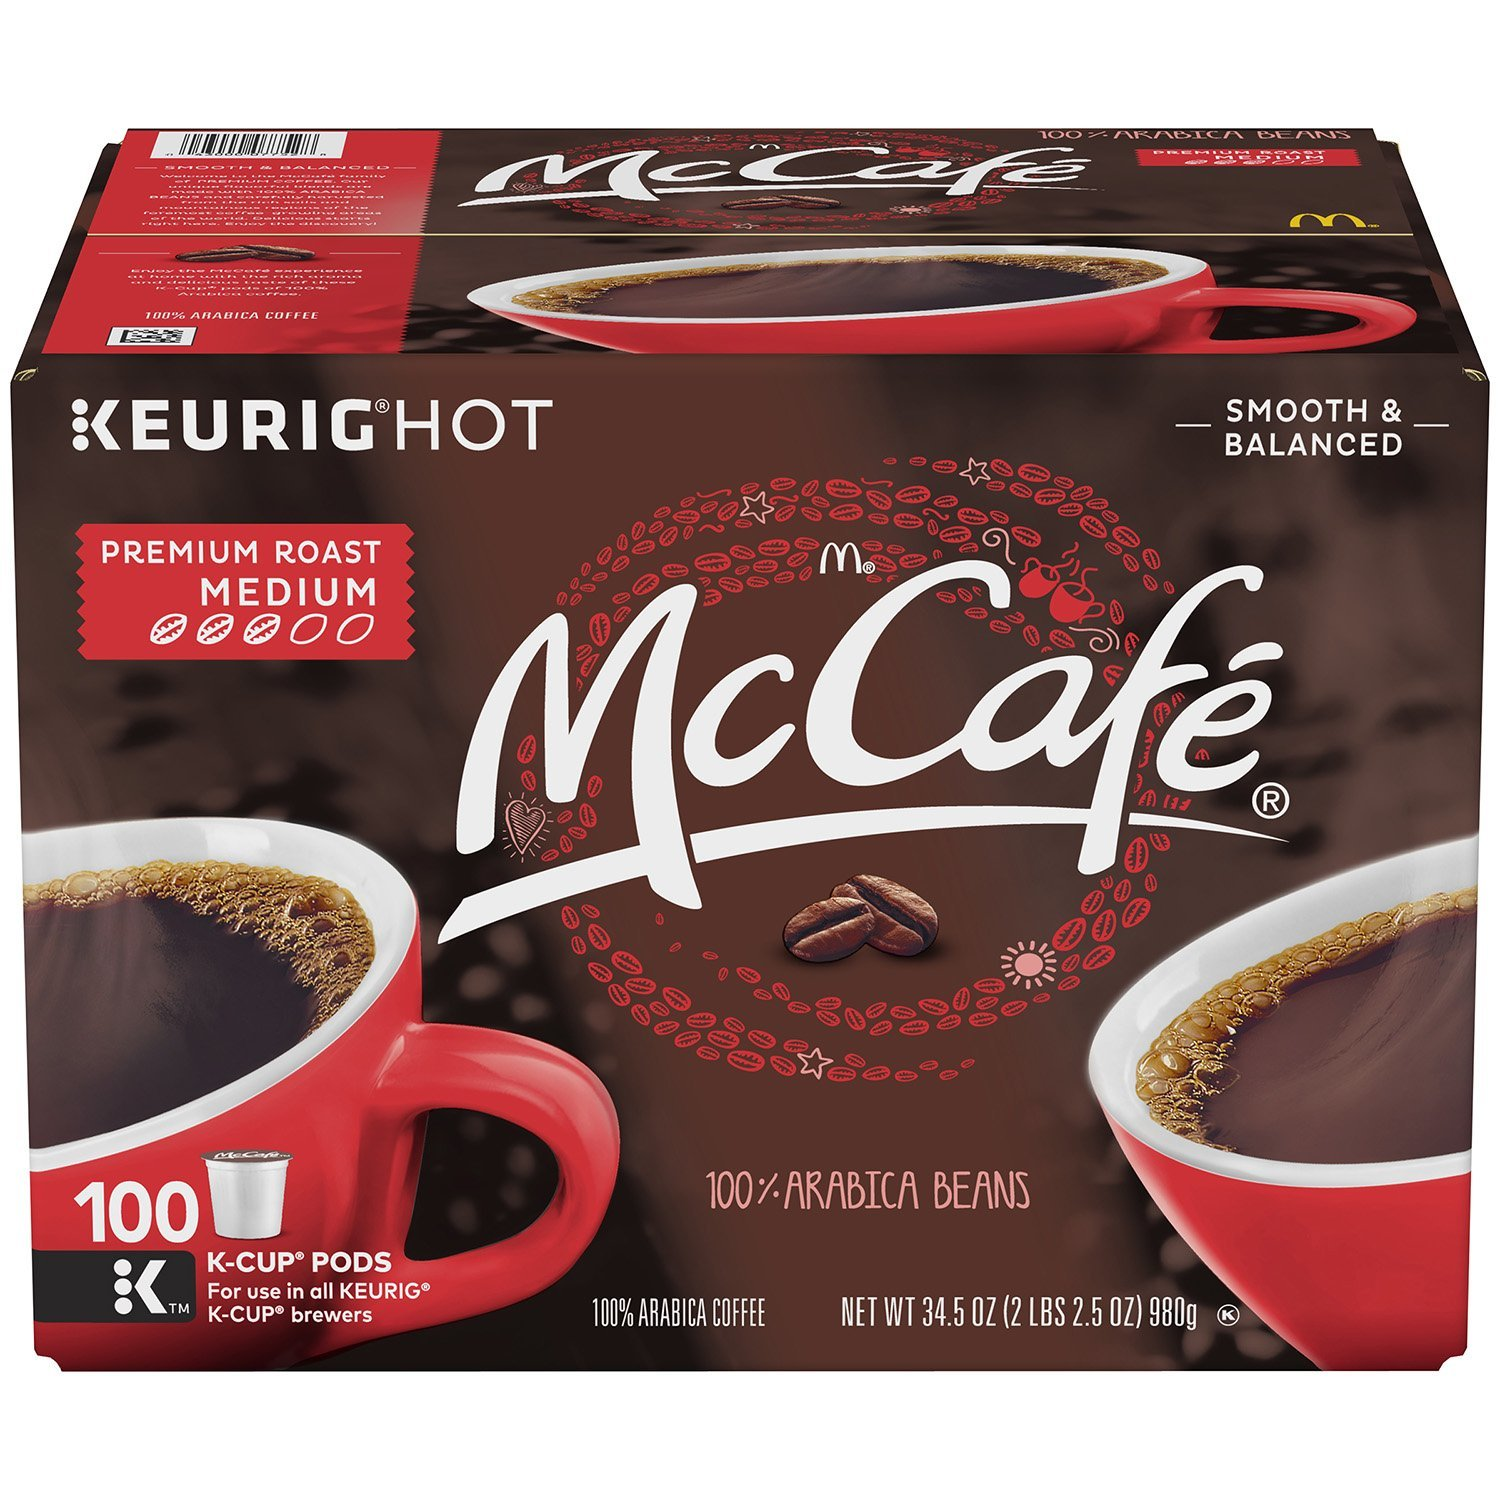 Primary image for McCafe Premium Roast K-Cup Coffee Pods (100 ct.)